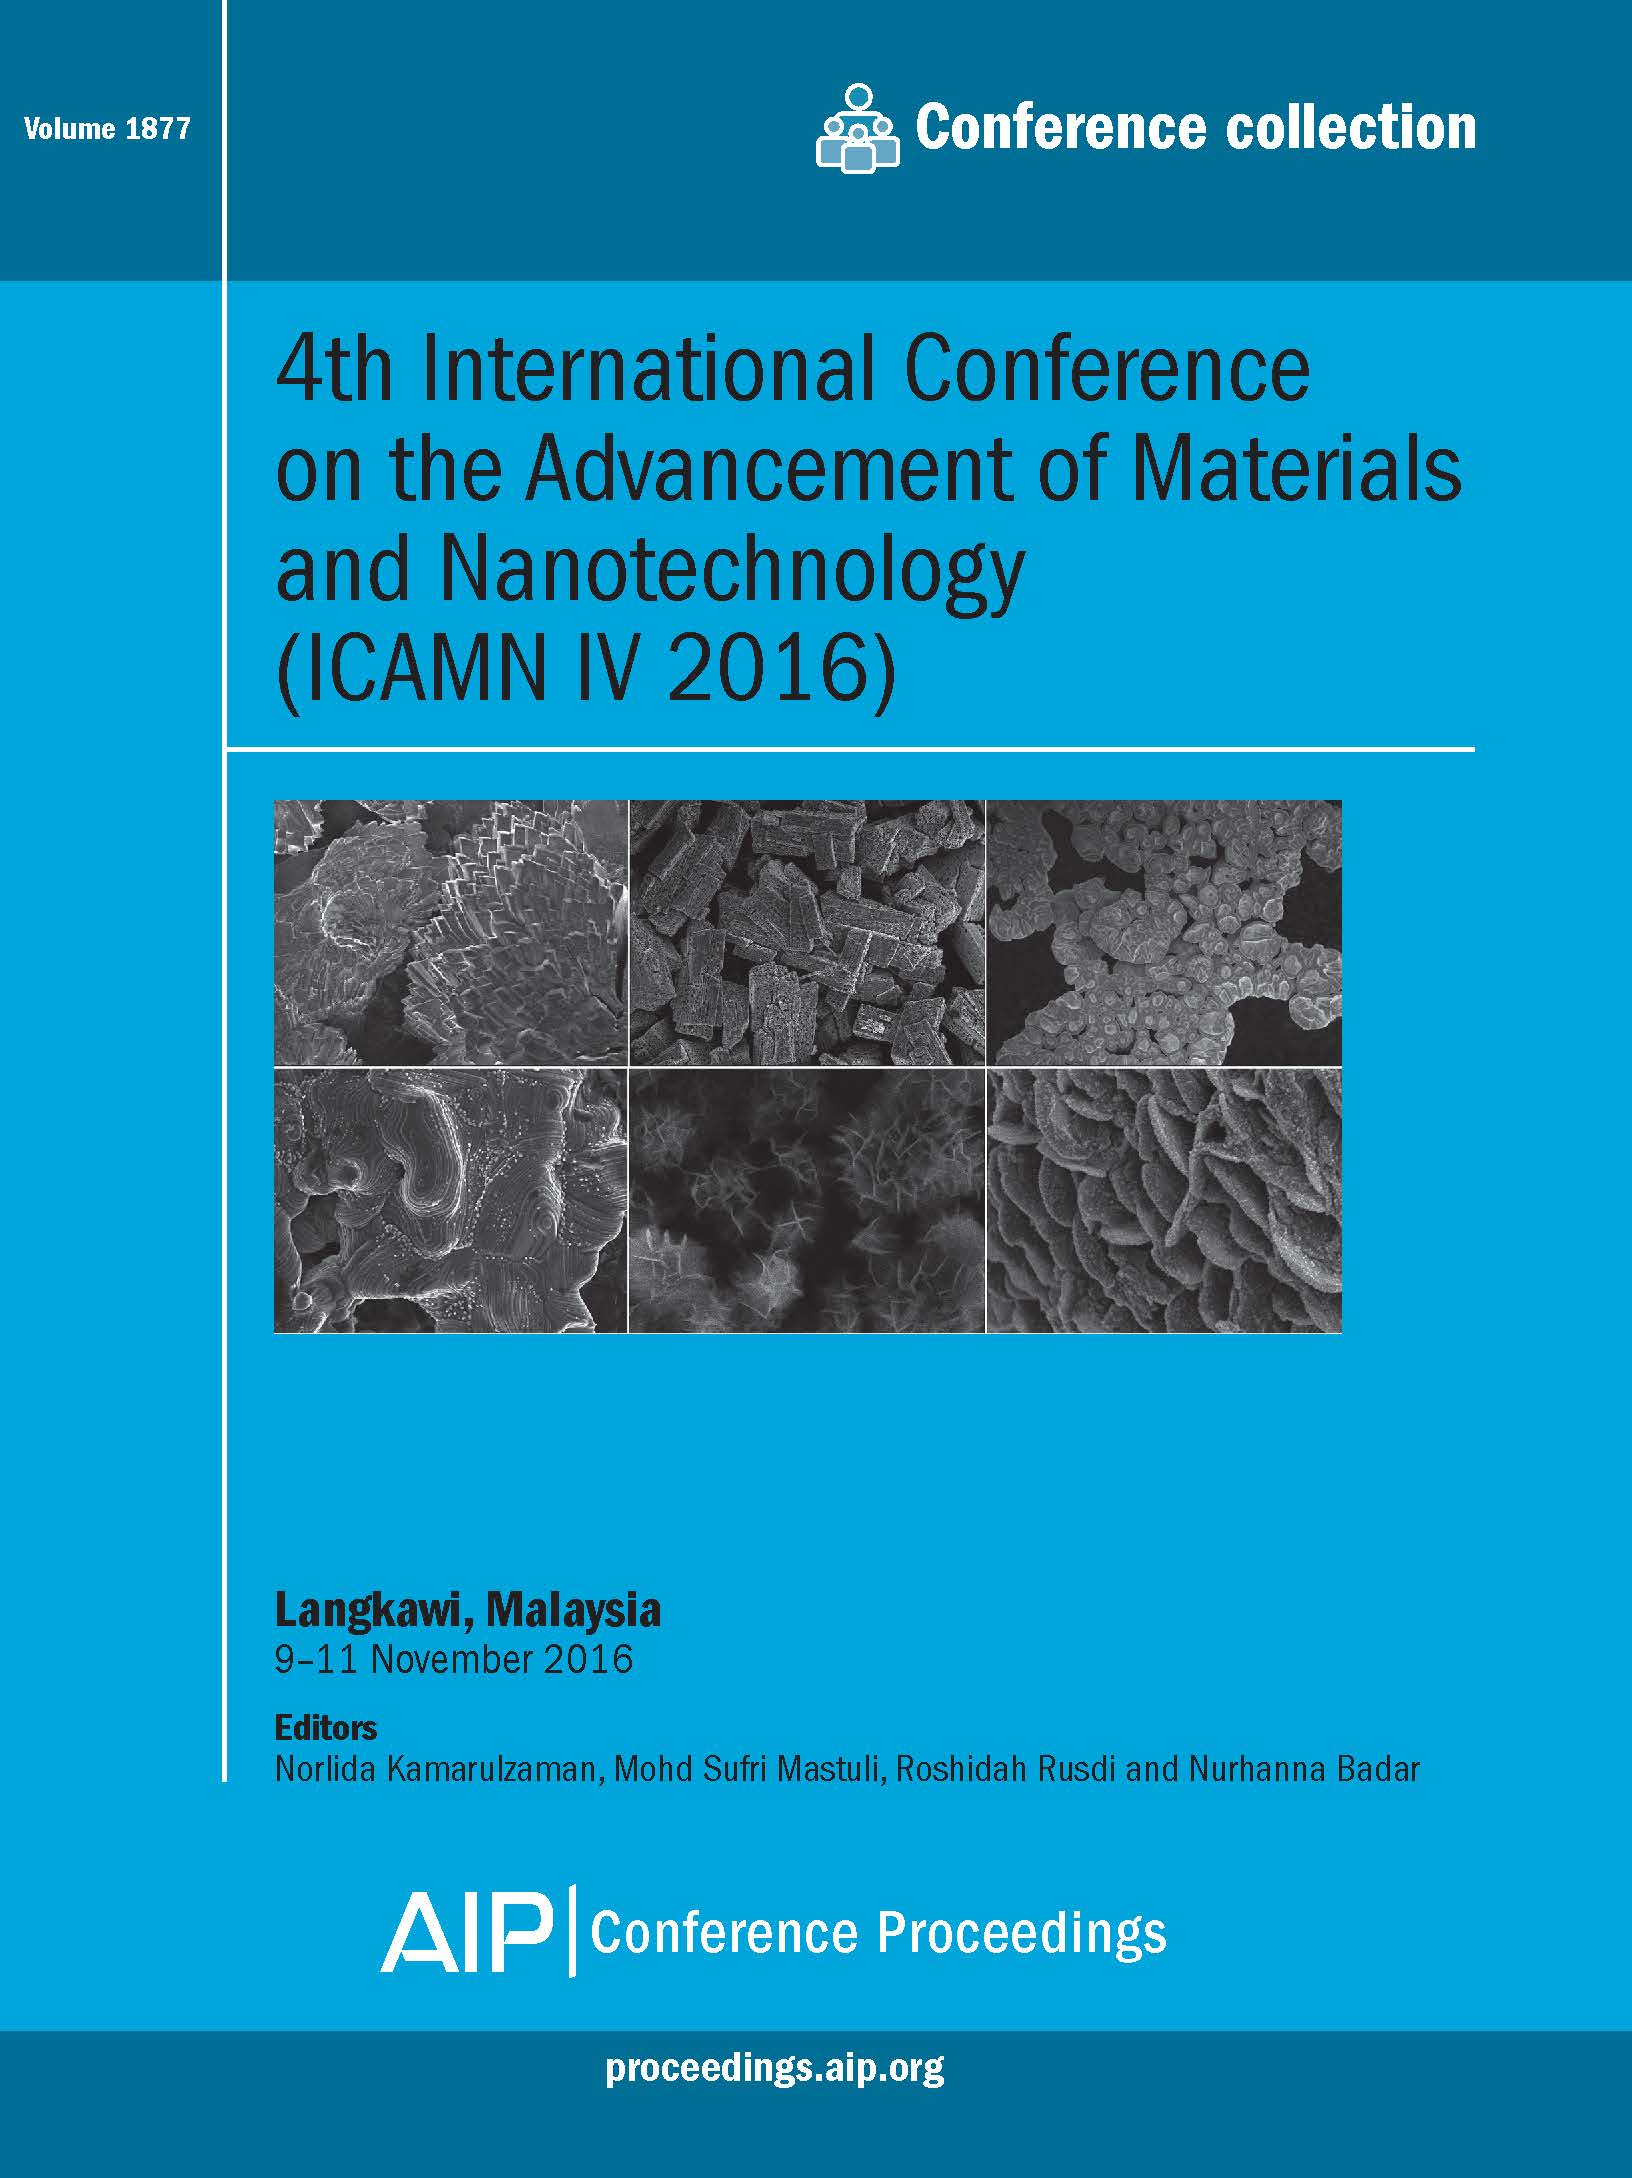 Volume 1877: 4th International Conference on the Advancement